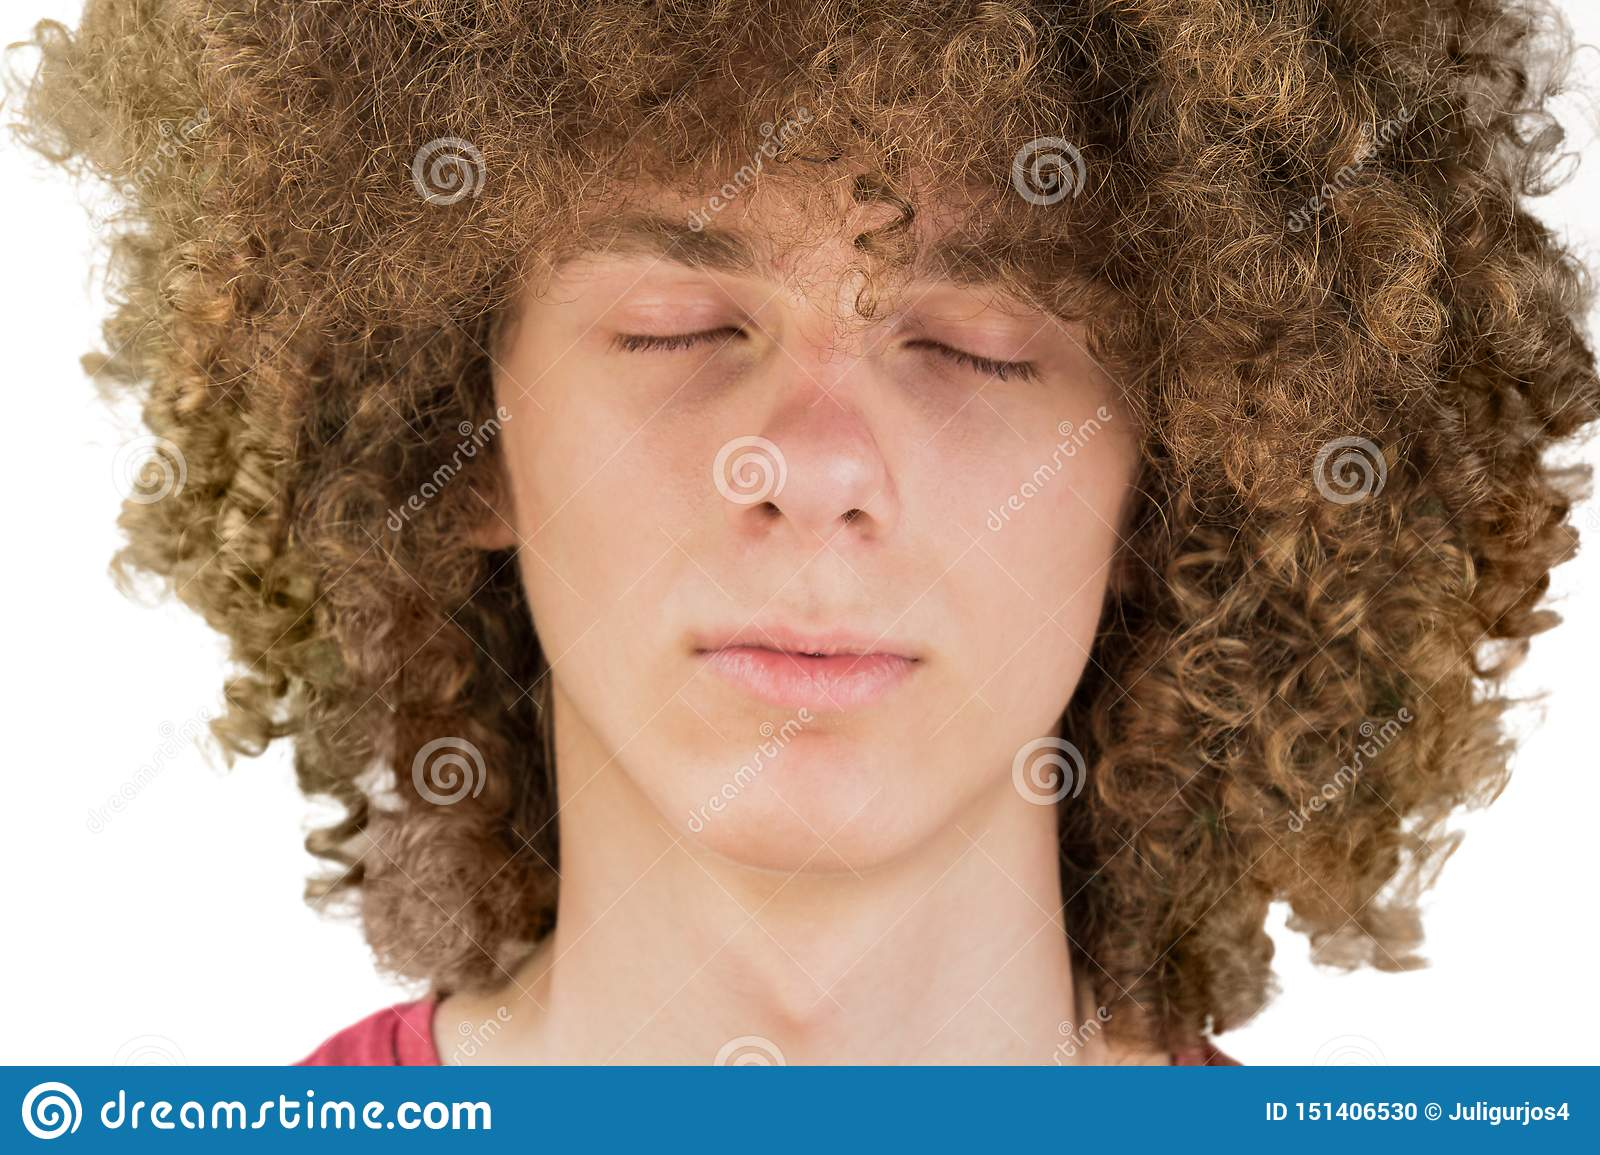 Cropped Portrait Of A Young Curly European Man With Long Curly Hair And Closed Eyes Close Up Very Lush Male Hair Curling Hair Stock Photo Image Of Curling Link 151406530